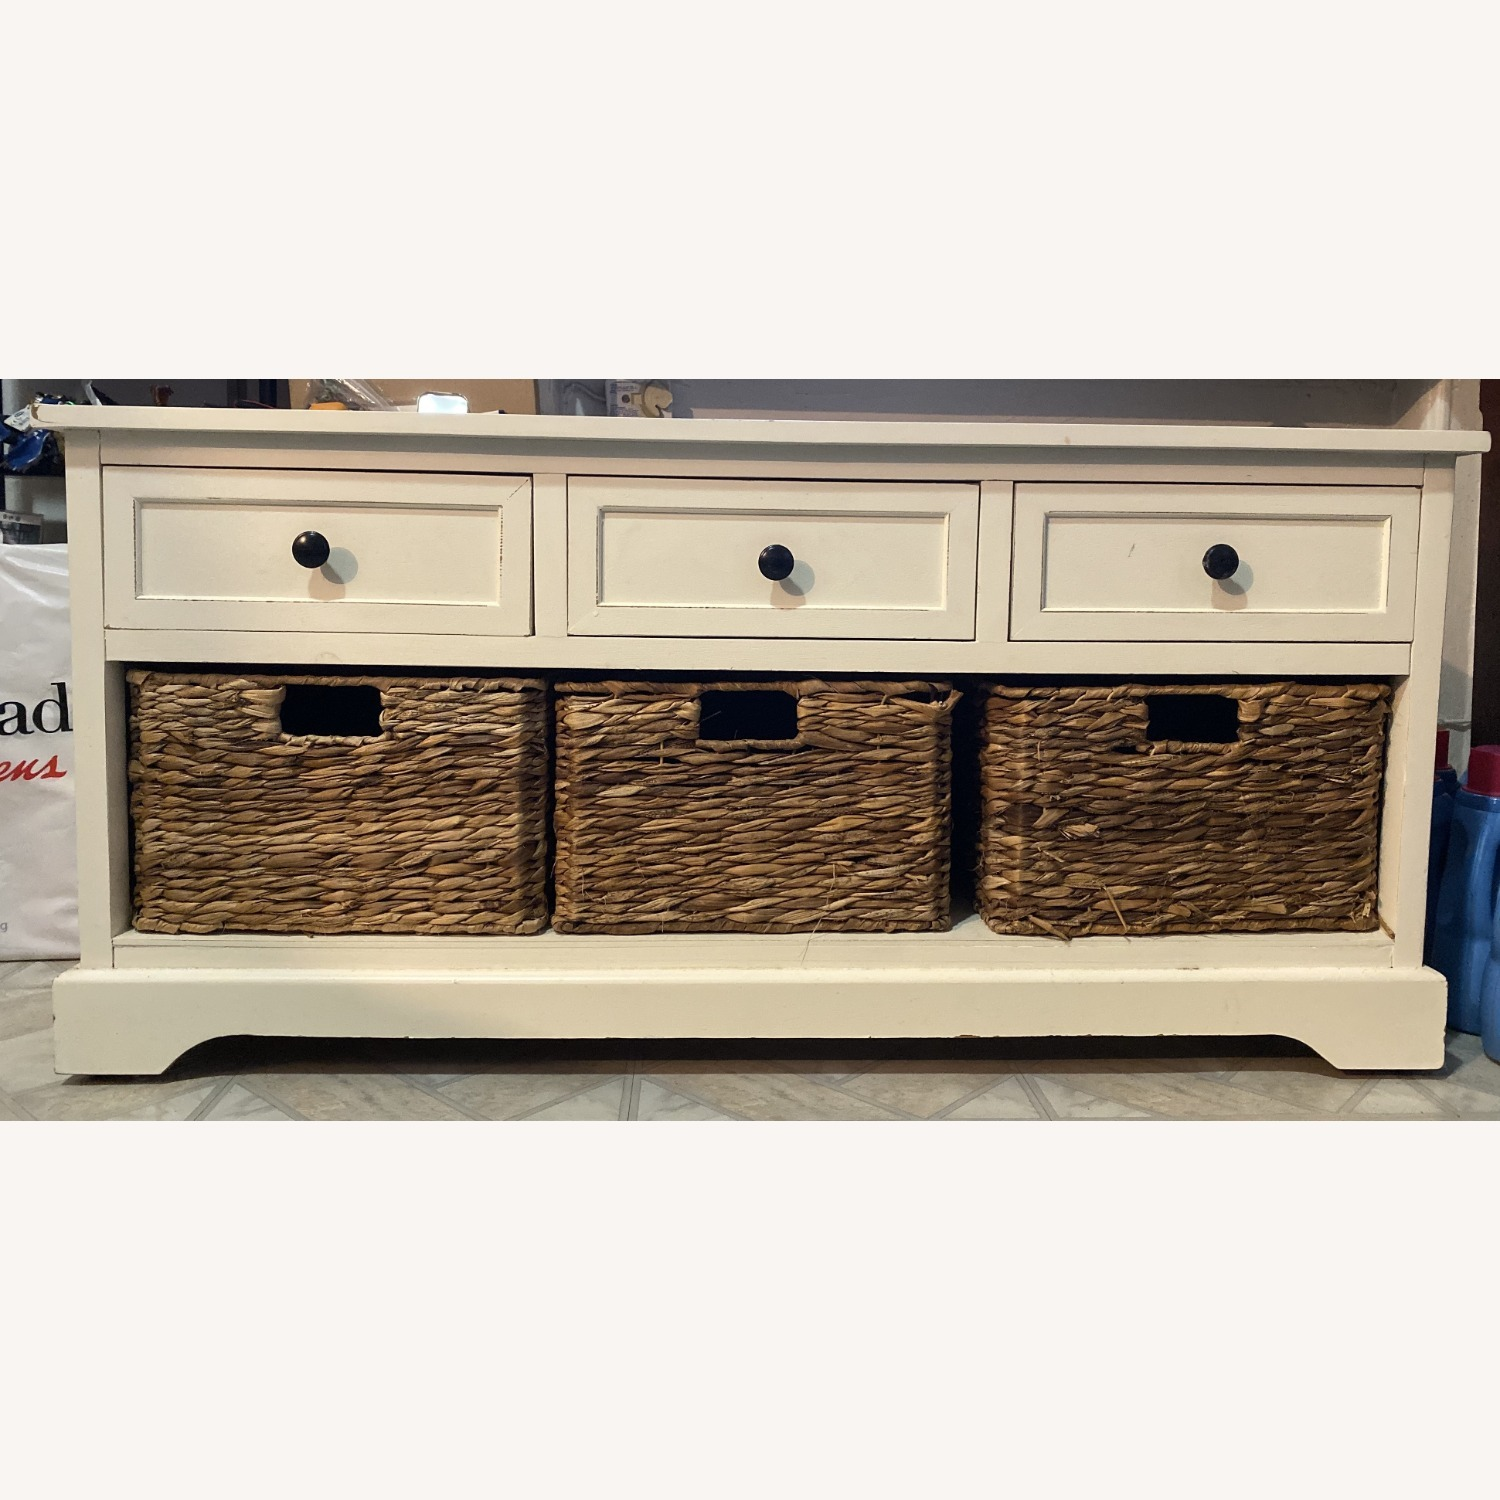 White Credenza with Baskets - image-1